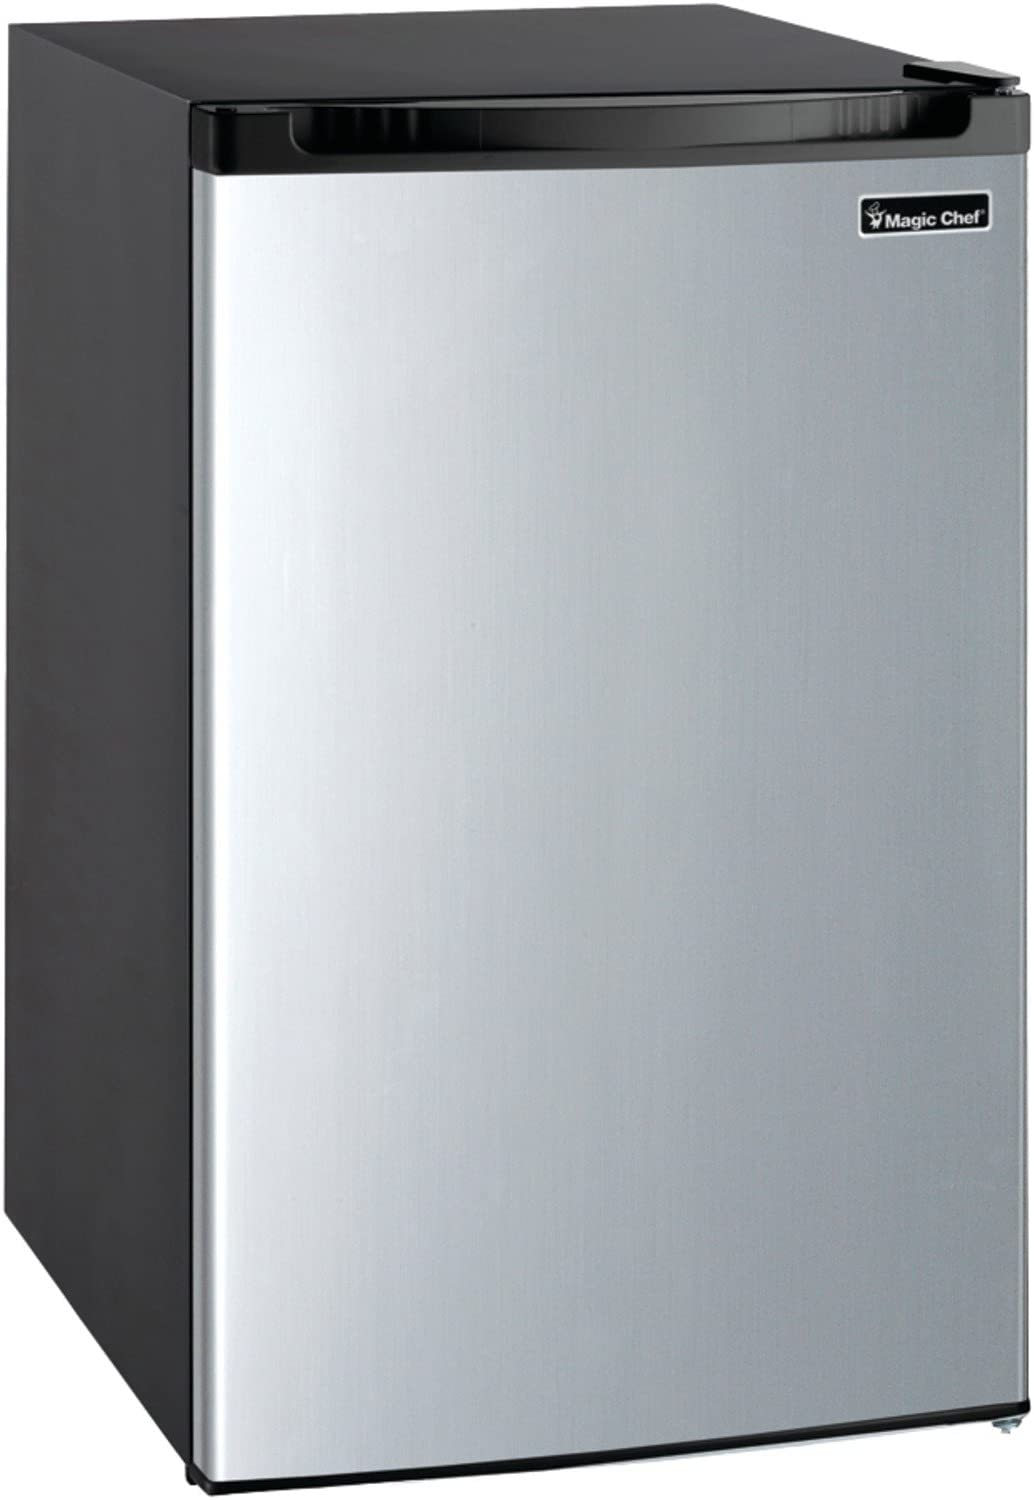 Magic Chef MCBR440S2 Refrigerator, 4.4 cu. ft, Stainless Steel